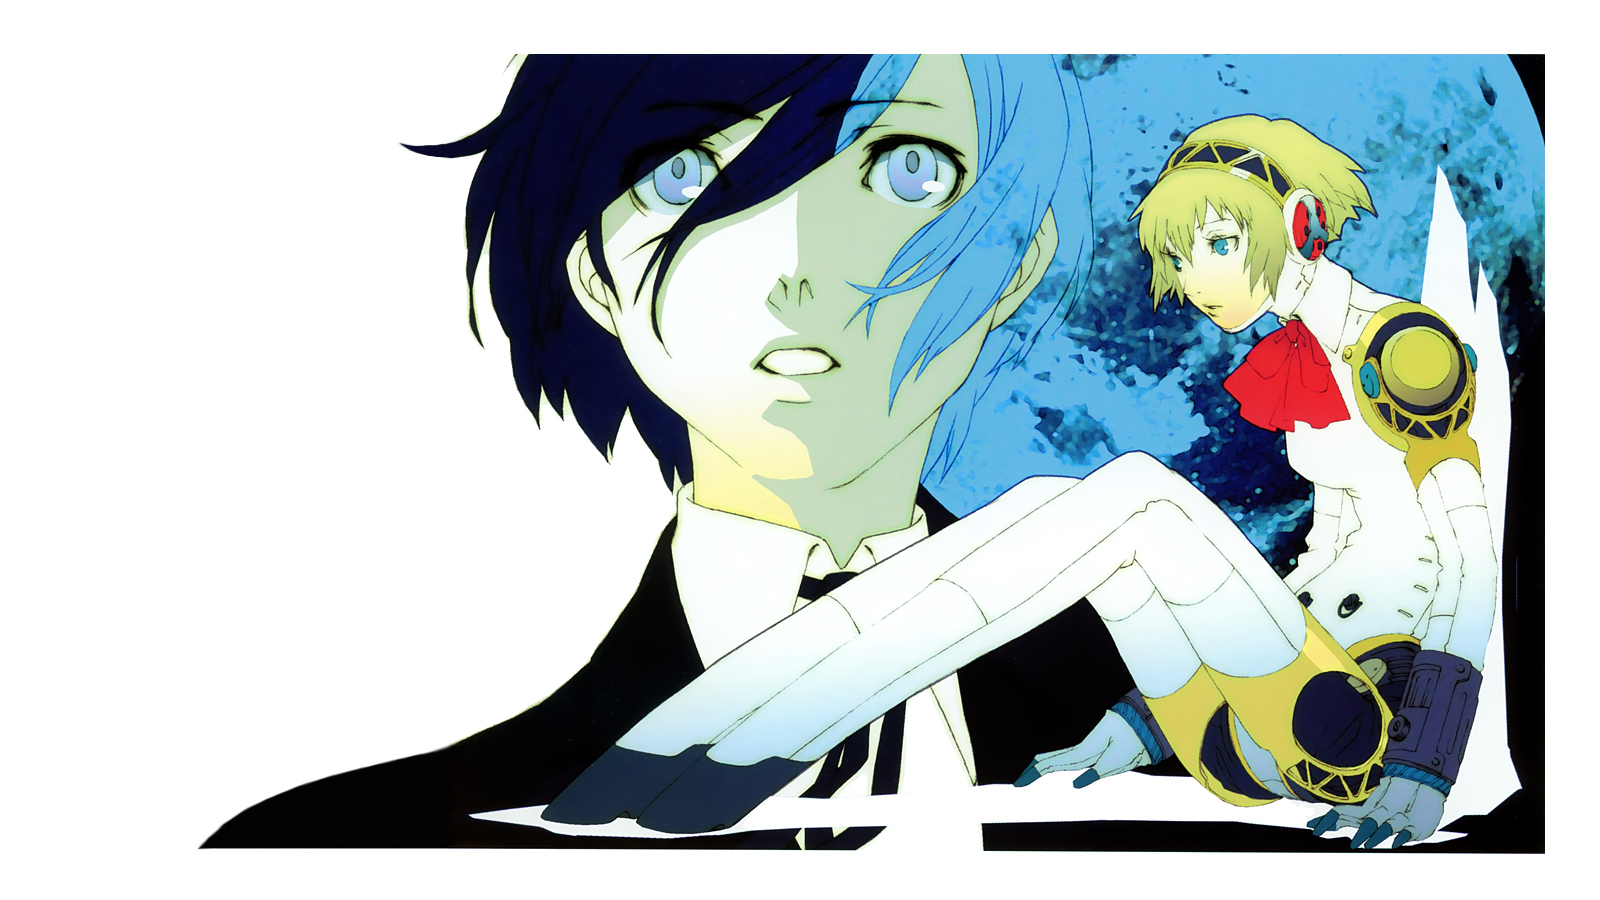 Persona 3 iphone 5 wallpaper - Video Game Persona 3 Wallpaper